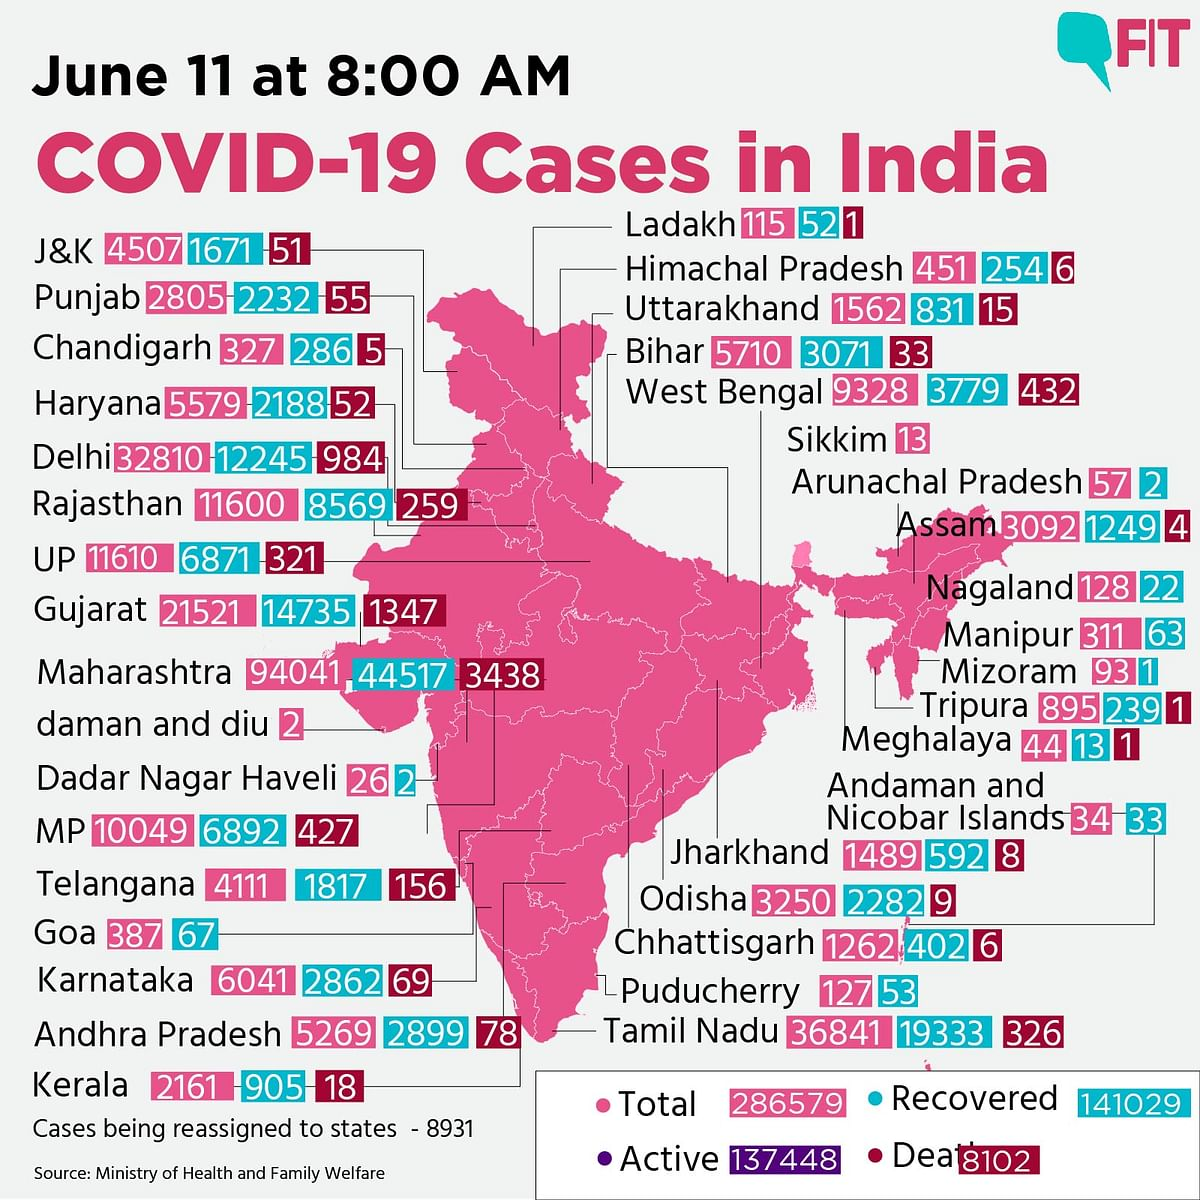 COVID-19 India Update: 10k Fresh Cases, 375 Deaths a Day